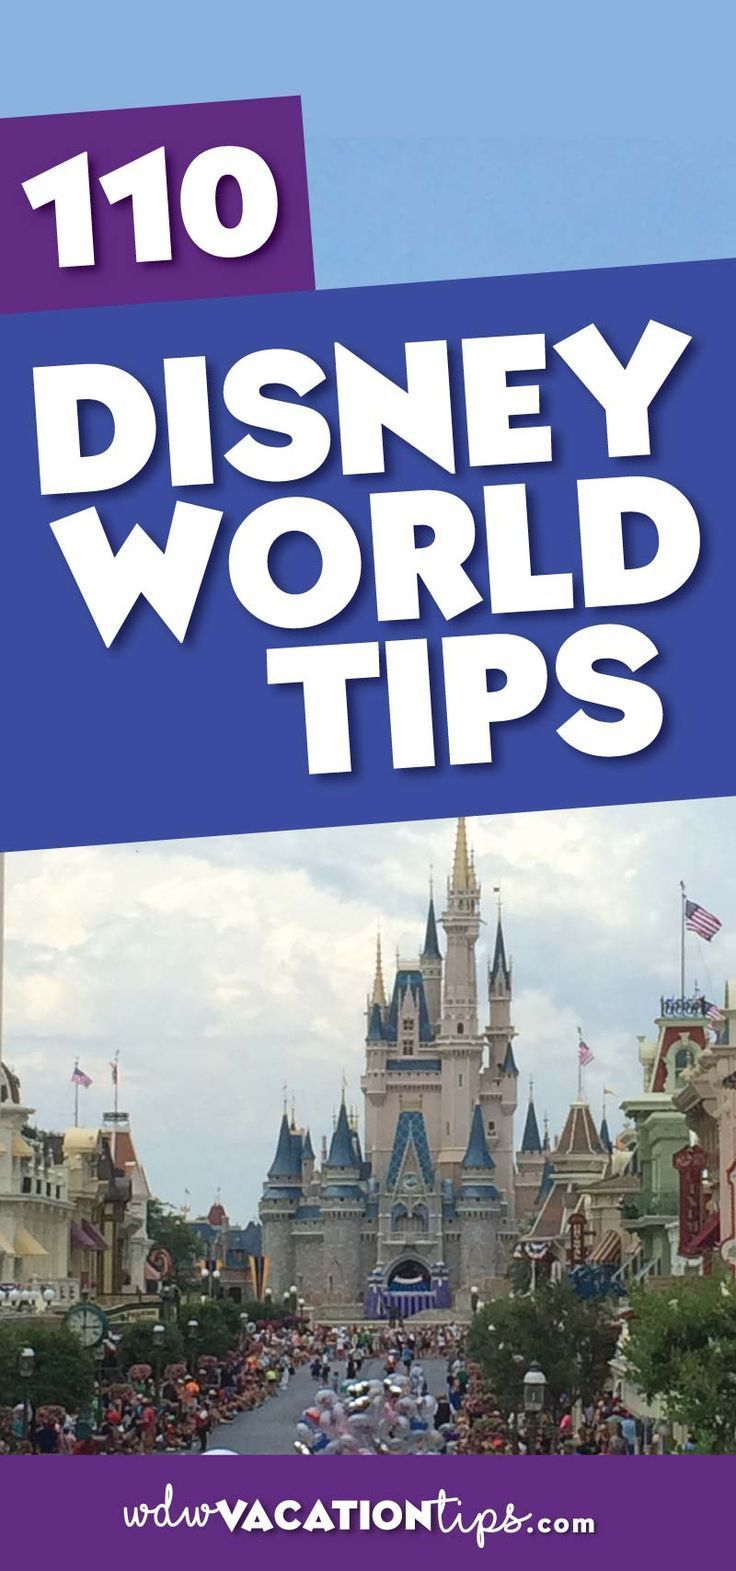 Disney Vacation Tips that will let you be prepared for your vacation. Get inside information and tips from locals. So you can have an amazing Disney vacation.